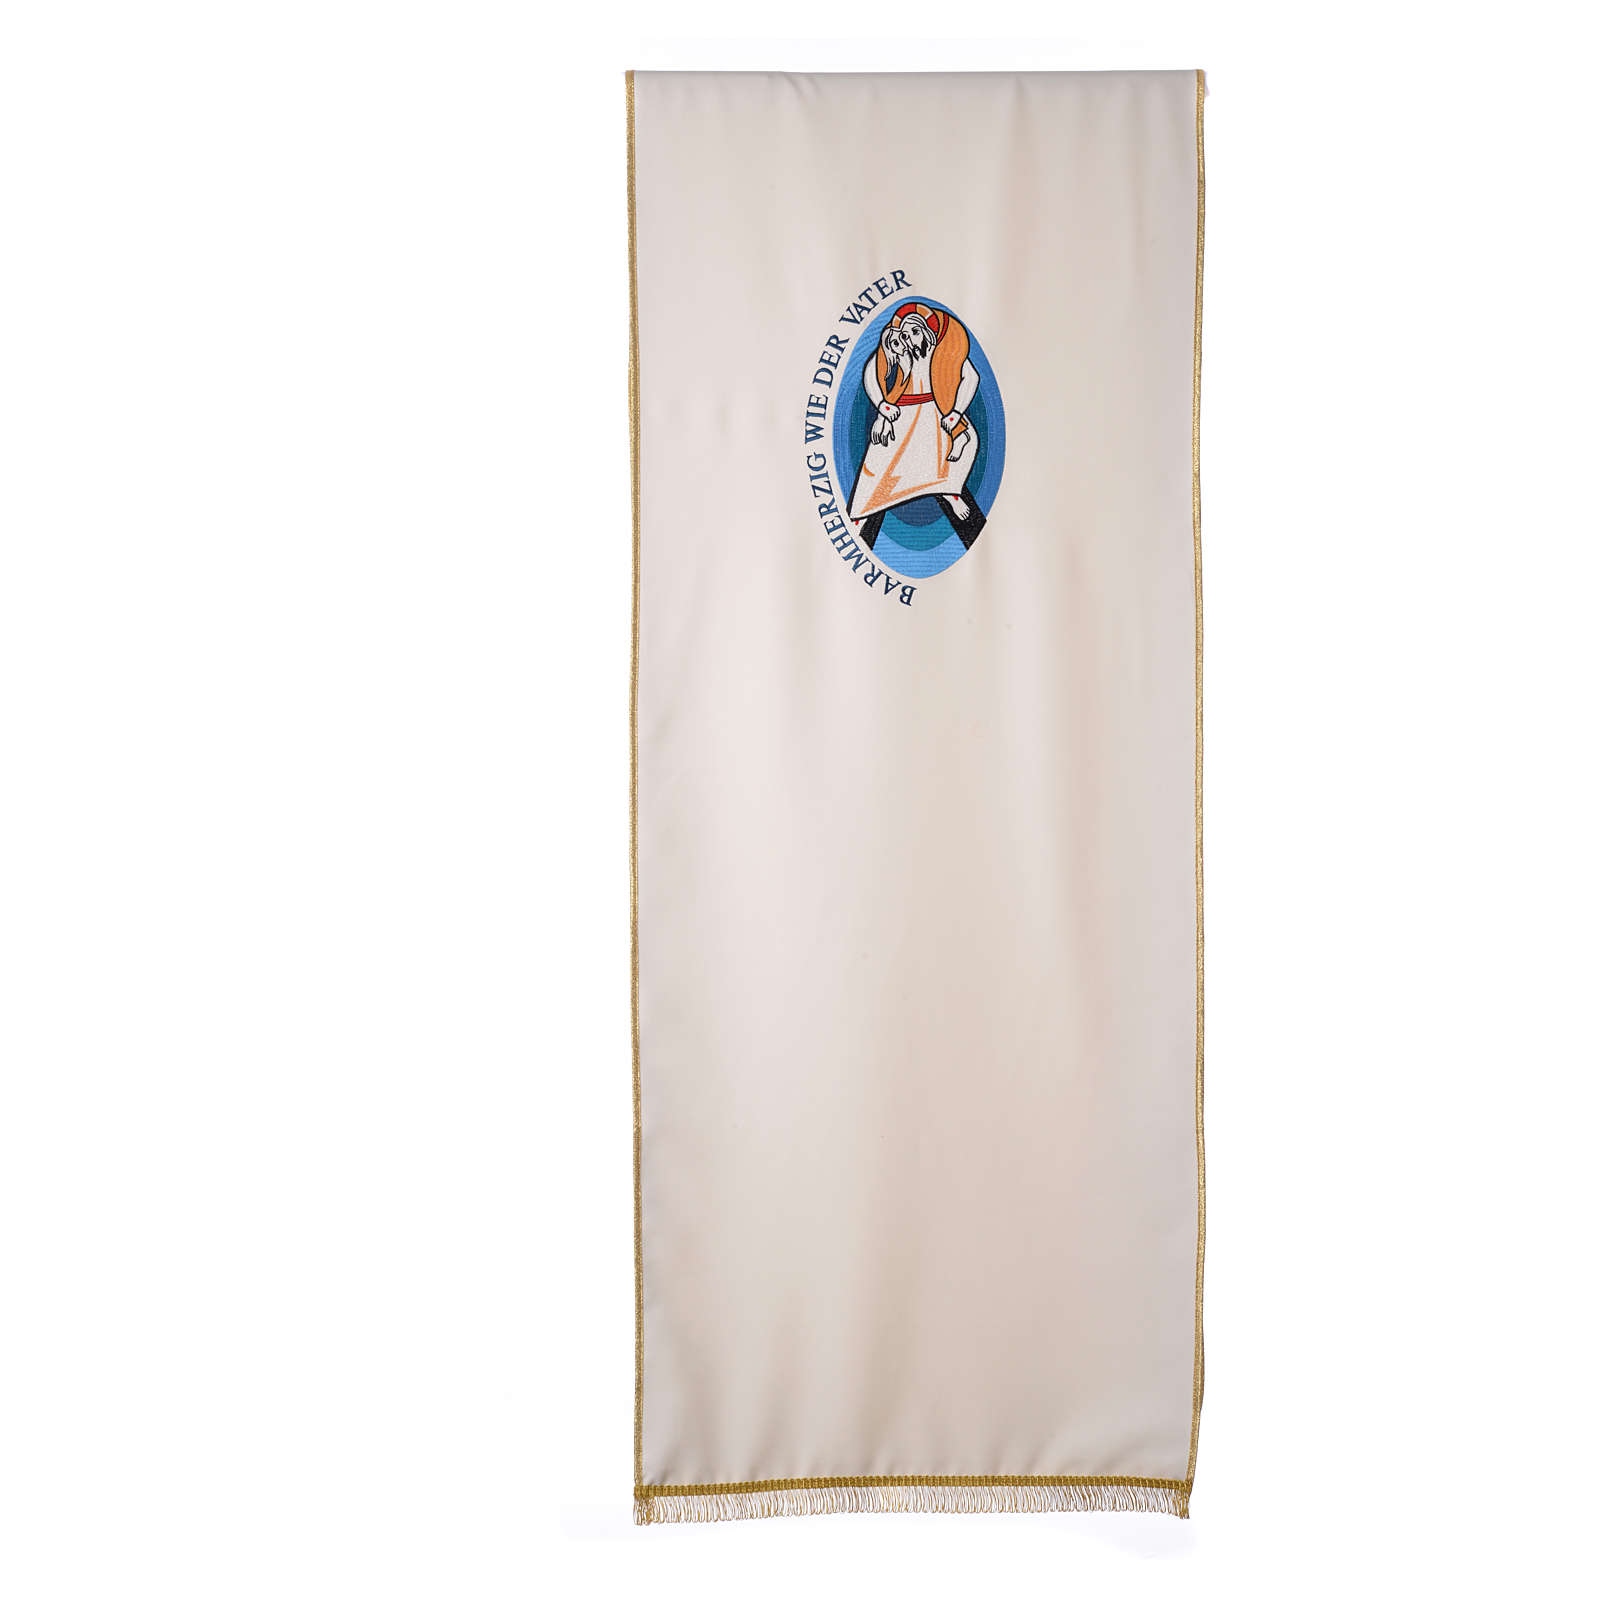 STOCK Jubilee lectern cover with GERMAN machine embroided logo 4